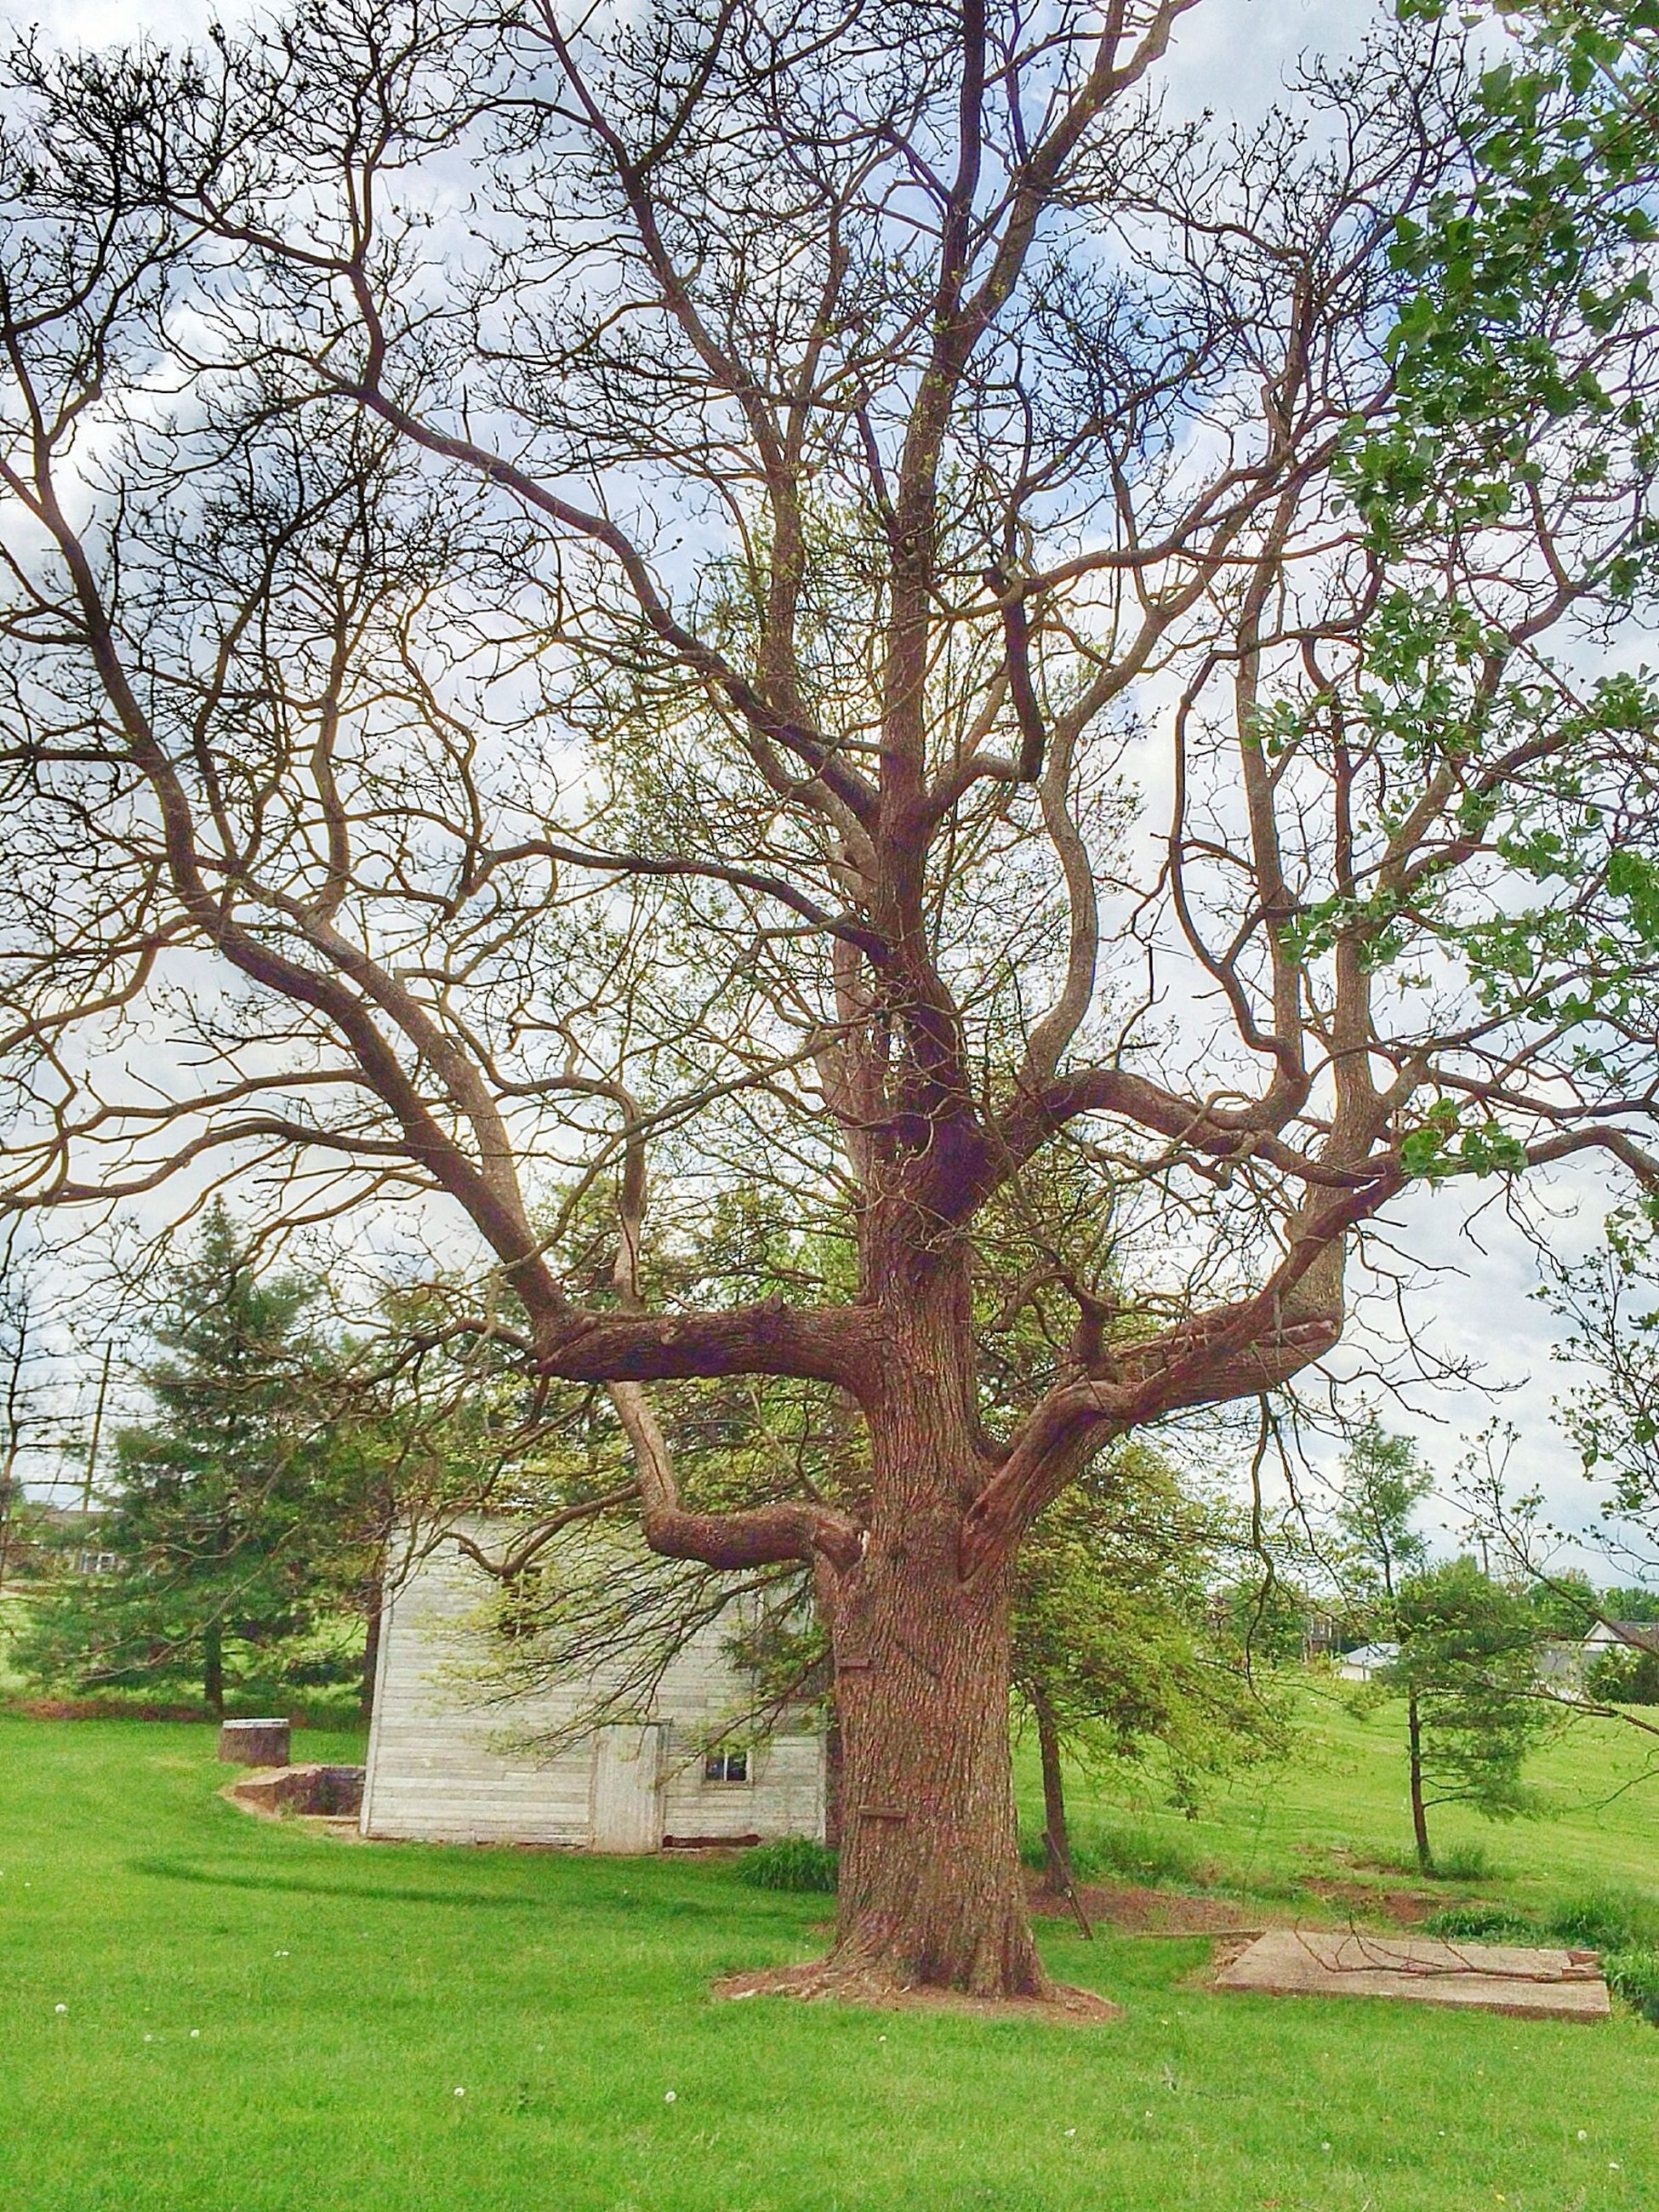 tree, branch, growth, tree trunk, green color, nature, built structure, tranquility, grass, bare tree, architecture, sky, building exterior, day, outdoors, beauty in nature, plant, field, no people, tranquil scene